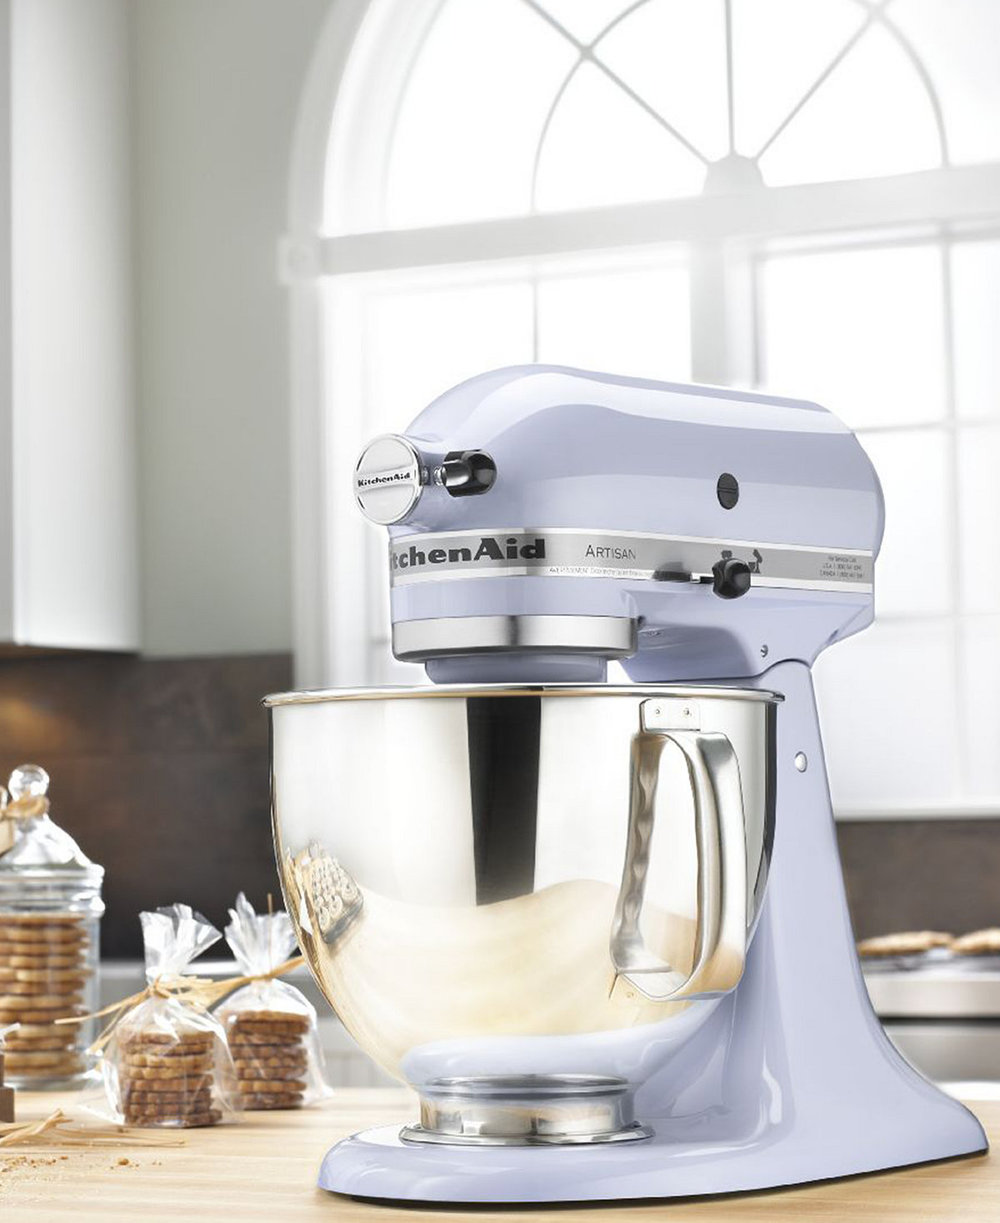 KitchenAid Stand Mixer - $300 (was $545!!)